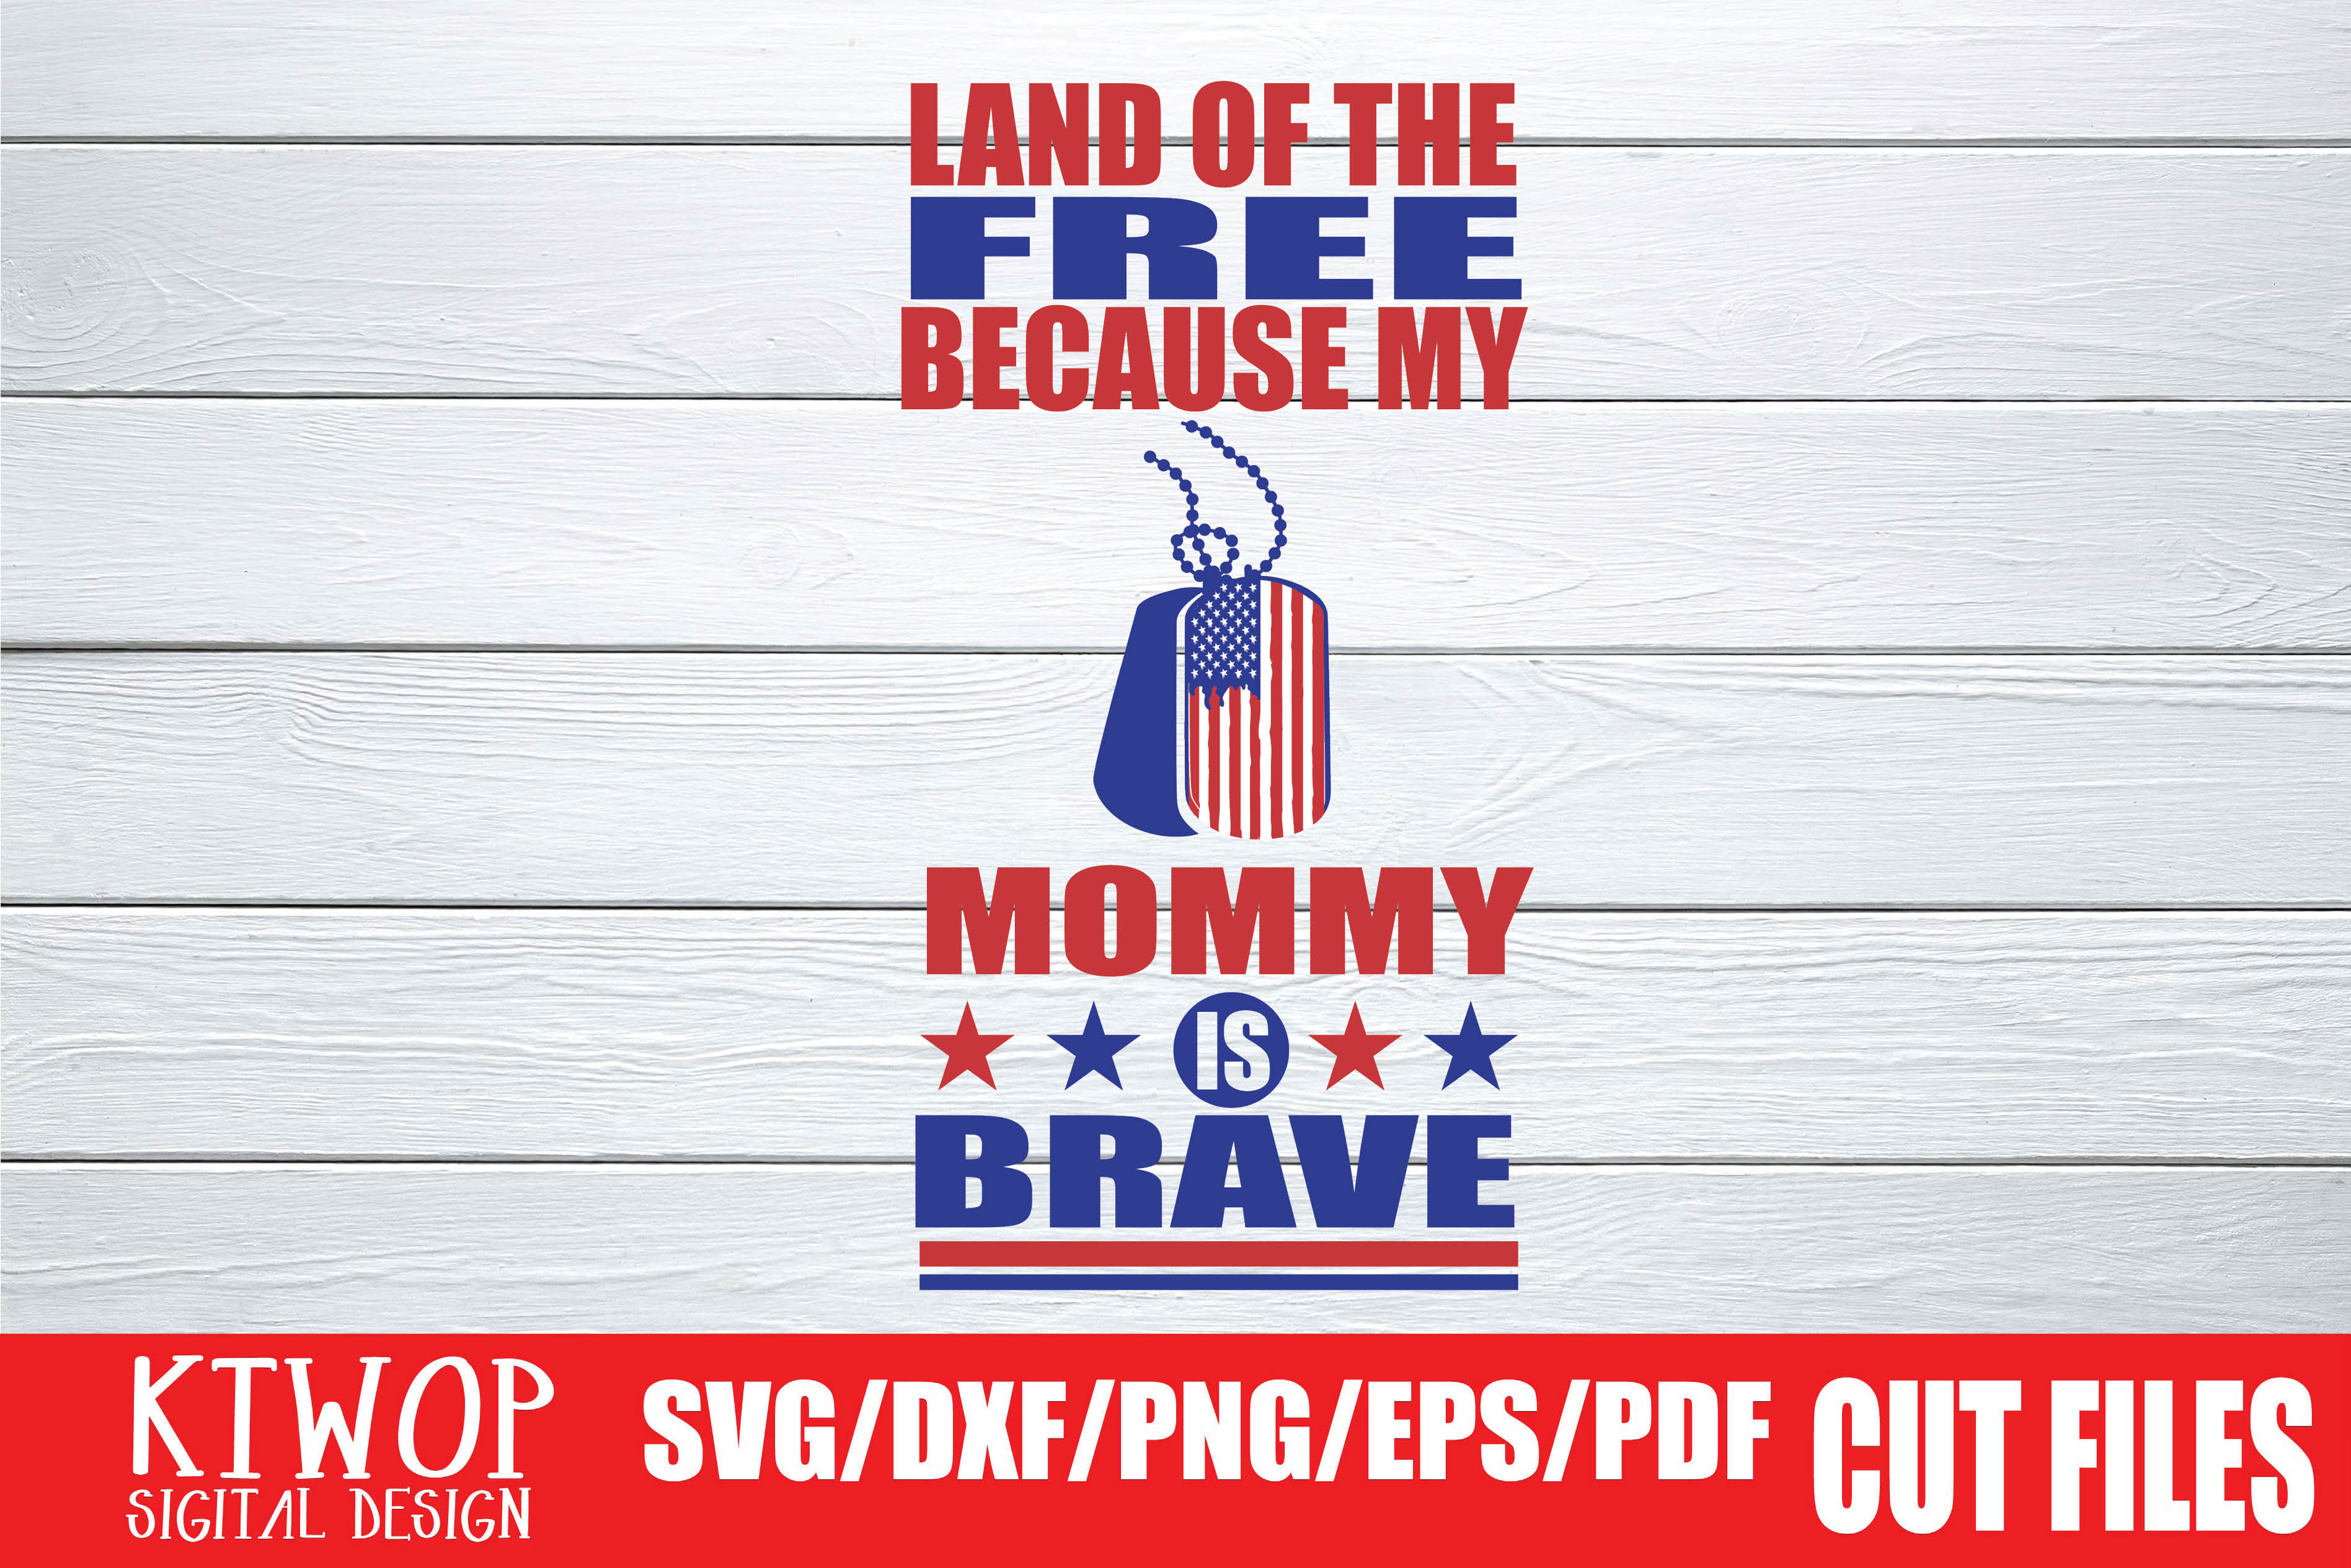 Download Free Land Of The Free Because My Mommy Is Brave Graphic By Ktwop for Cricut Explore, Silhouette and other cutting machines.